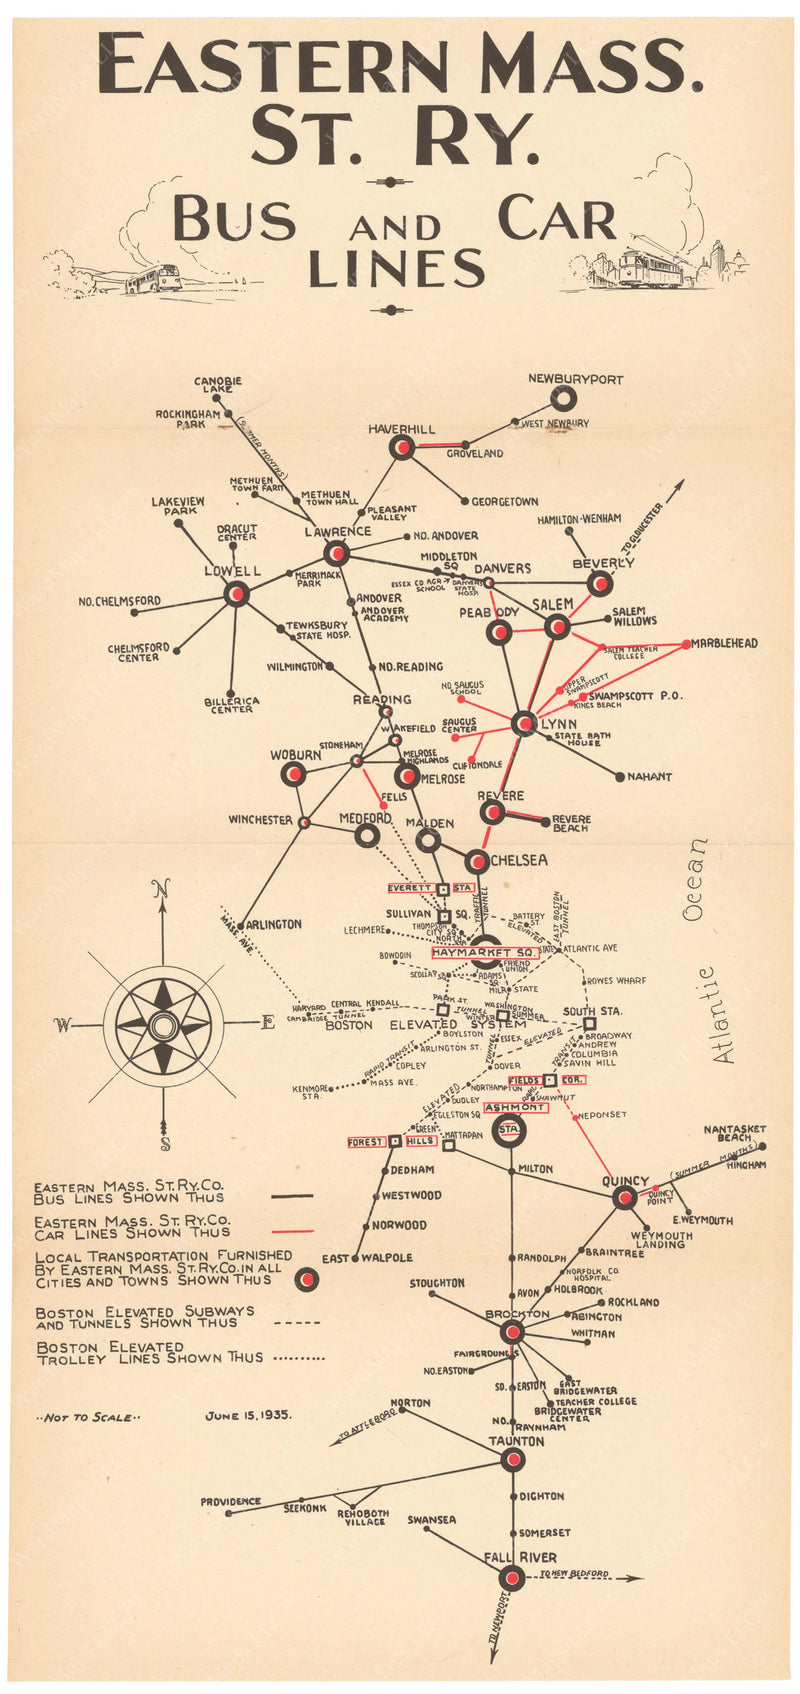 Eastern Mass. Street Railway Co. Bus and Car Lines Map 1935